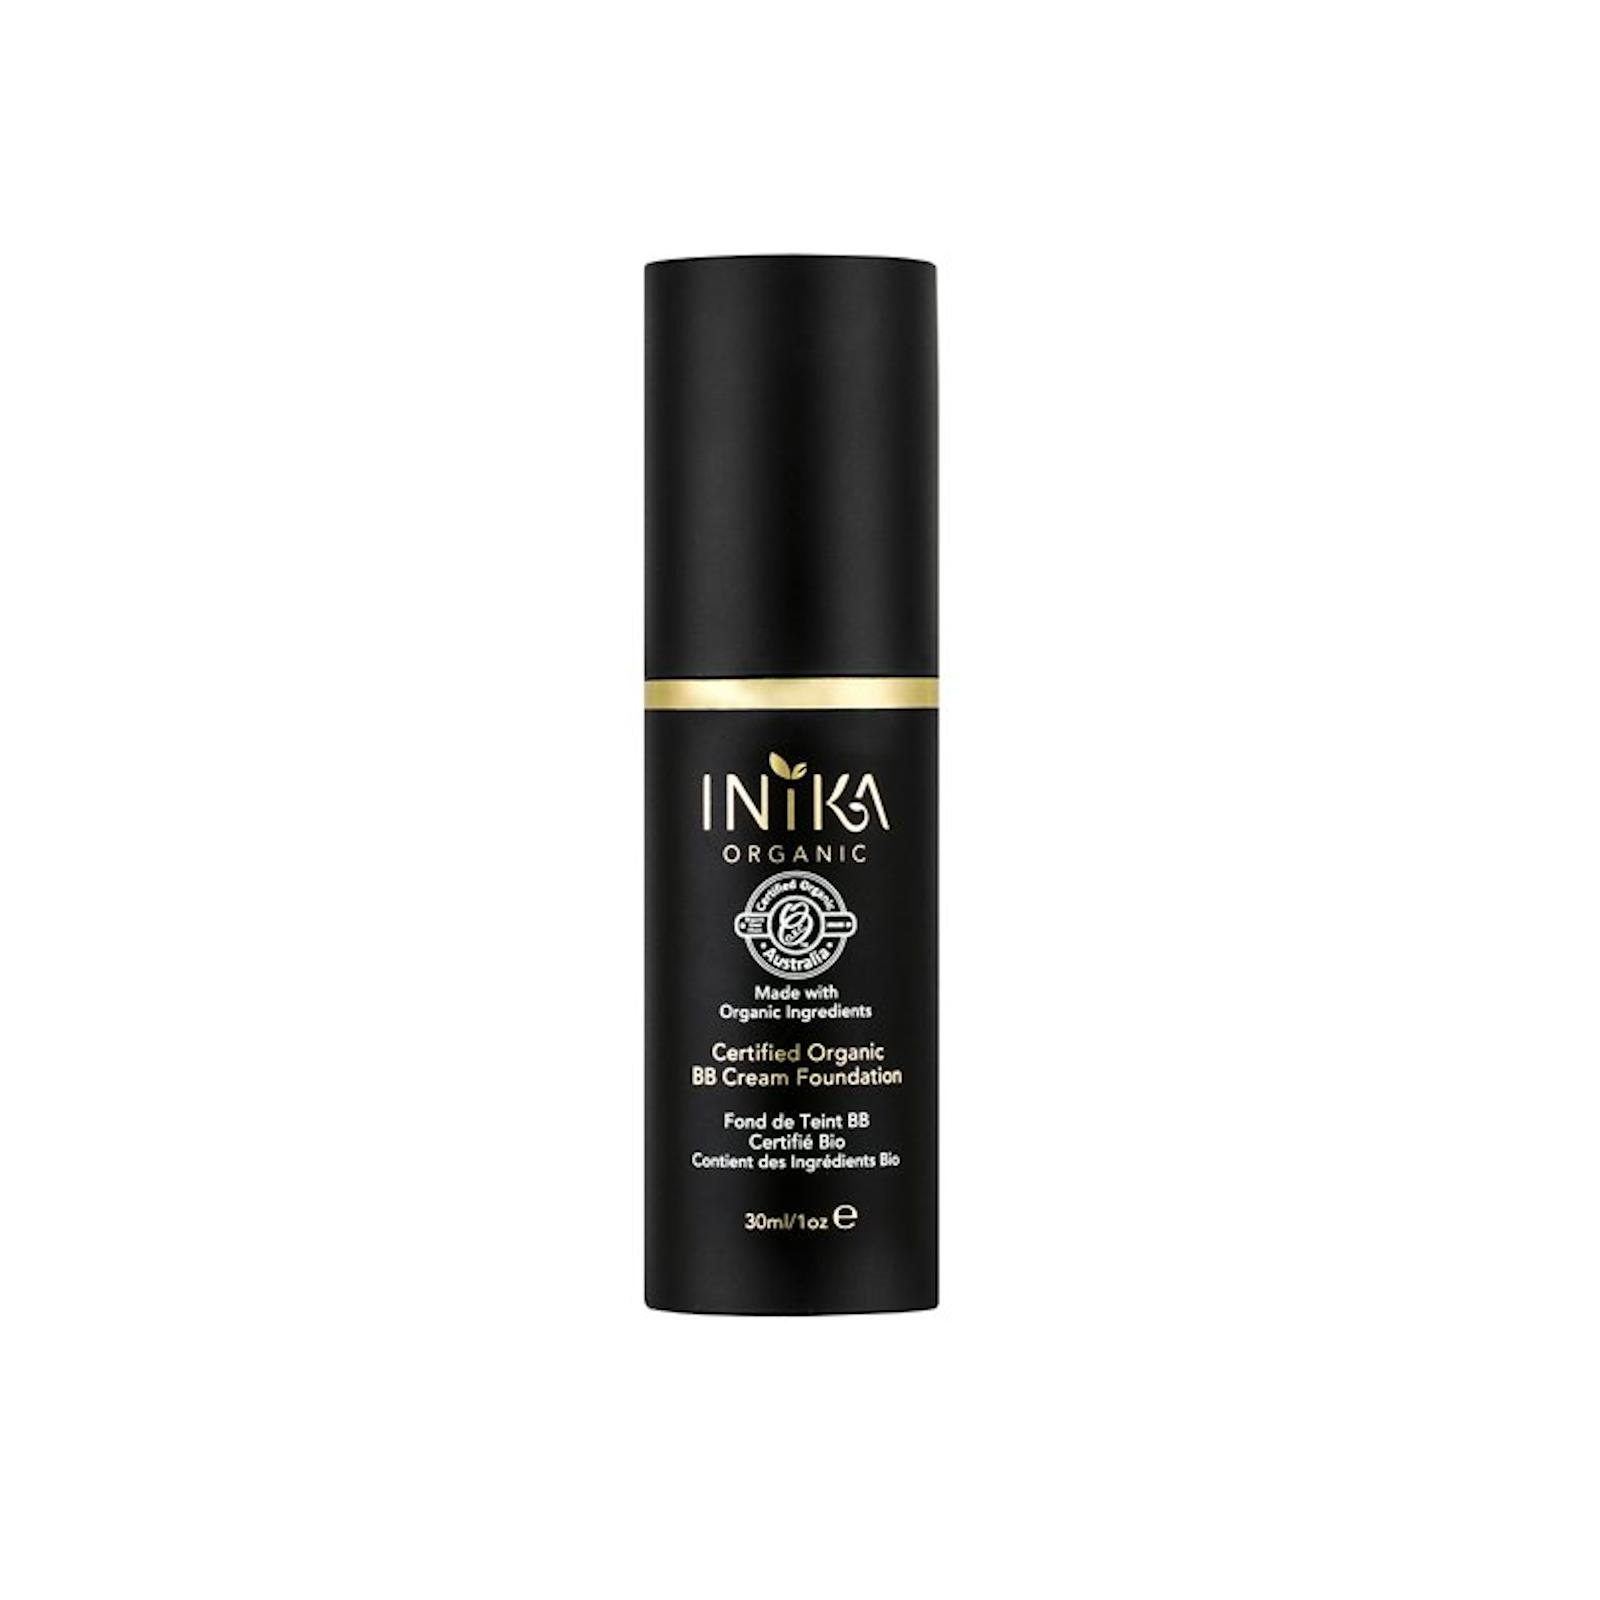 Inika Organic BB krém Honey 30 ml